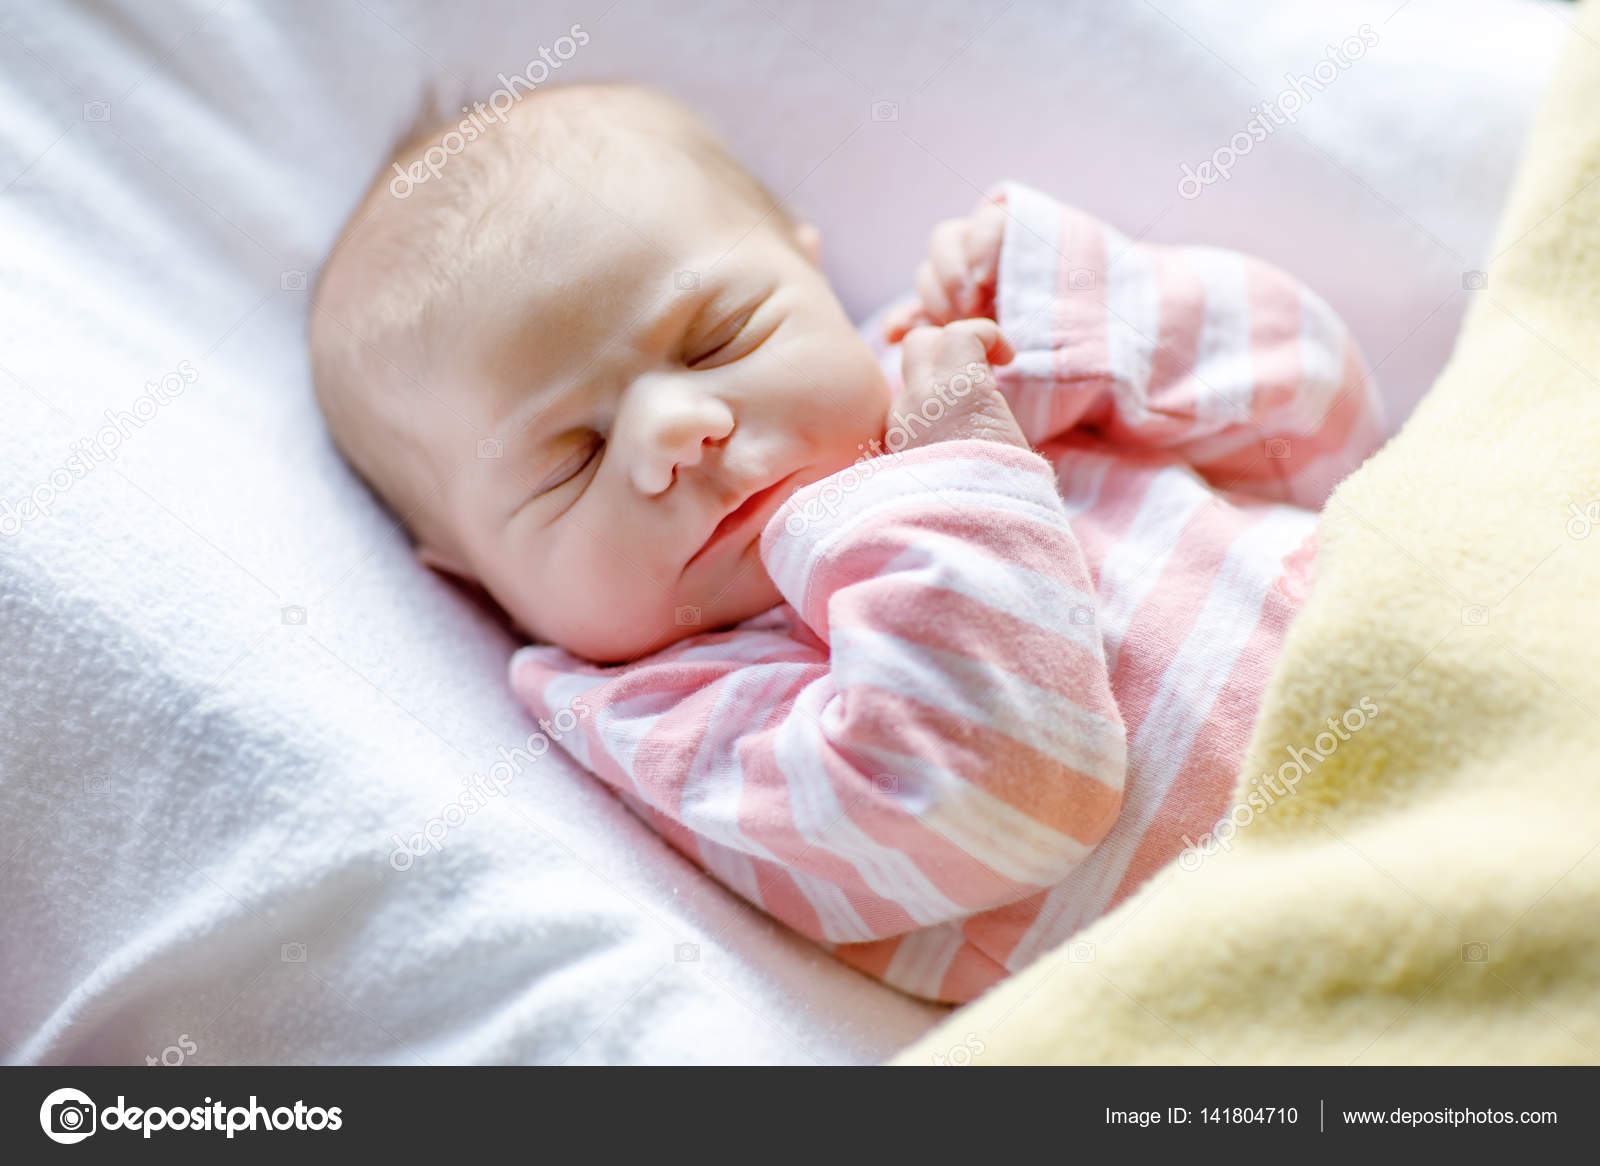 ecaa77ea1 Cute adorable newborn baby sleeping in white bed. New born child, little  girl laying in bed. Family, new life, childhood, beginning concept.